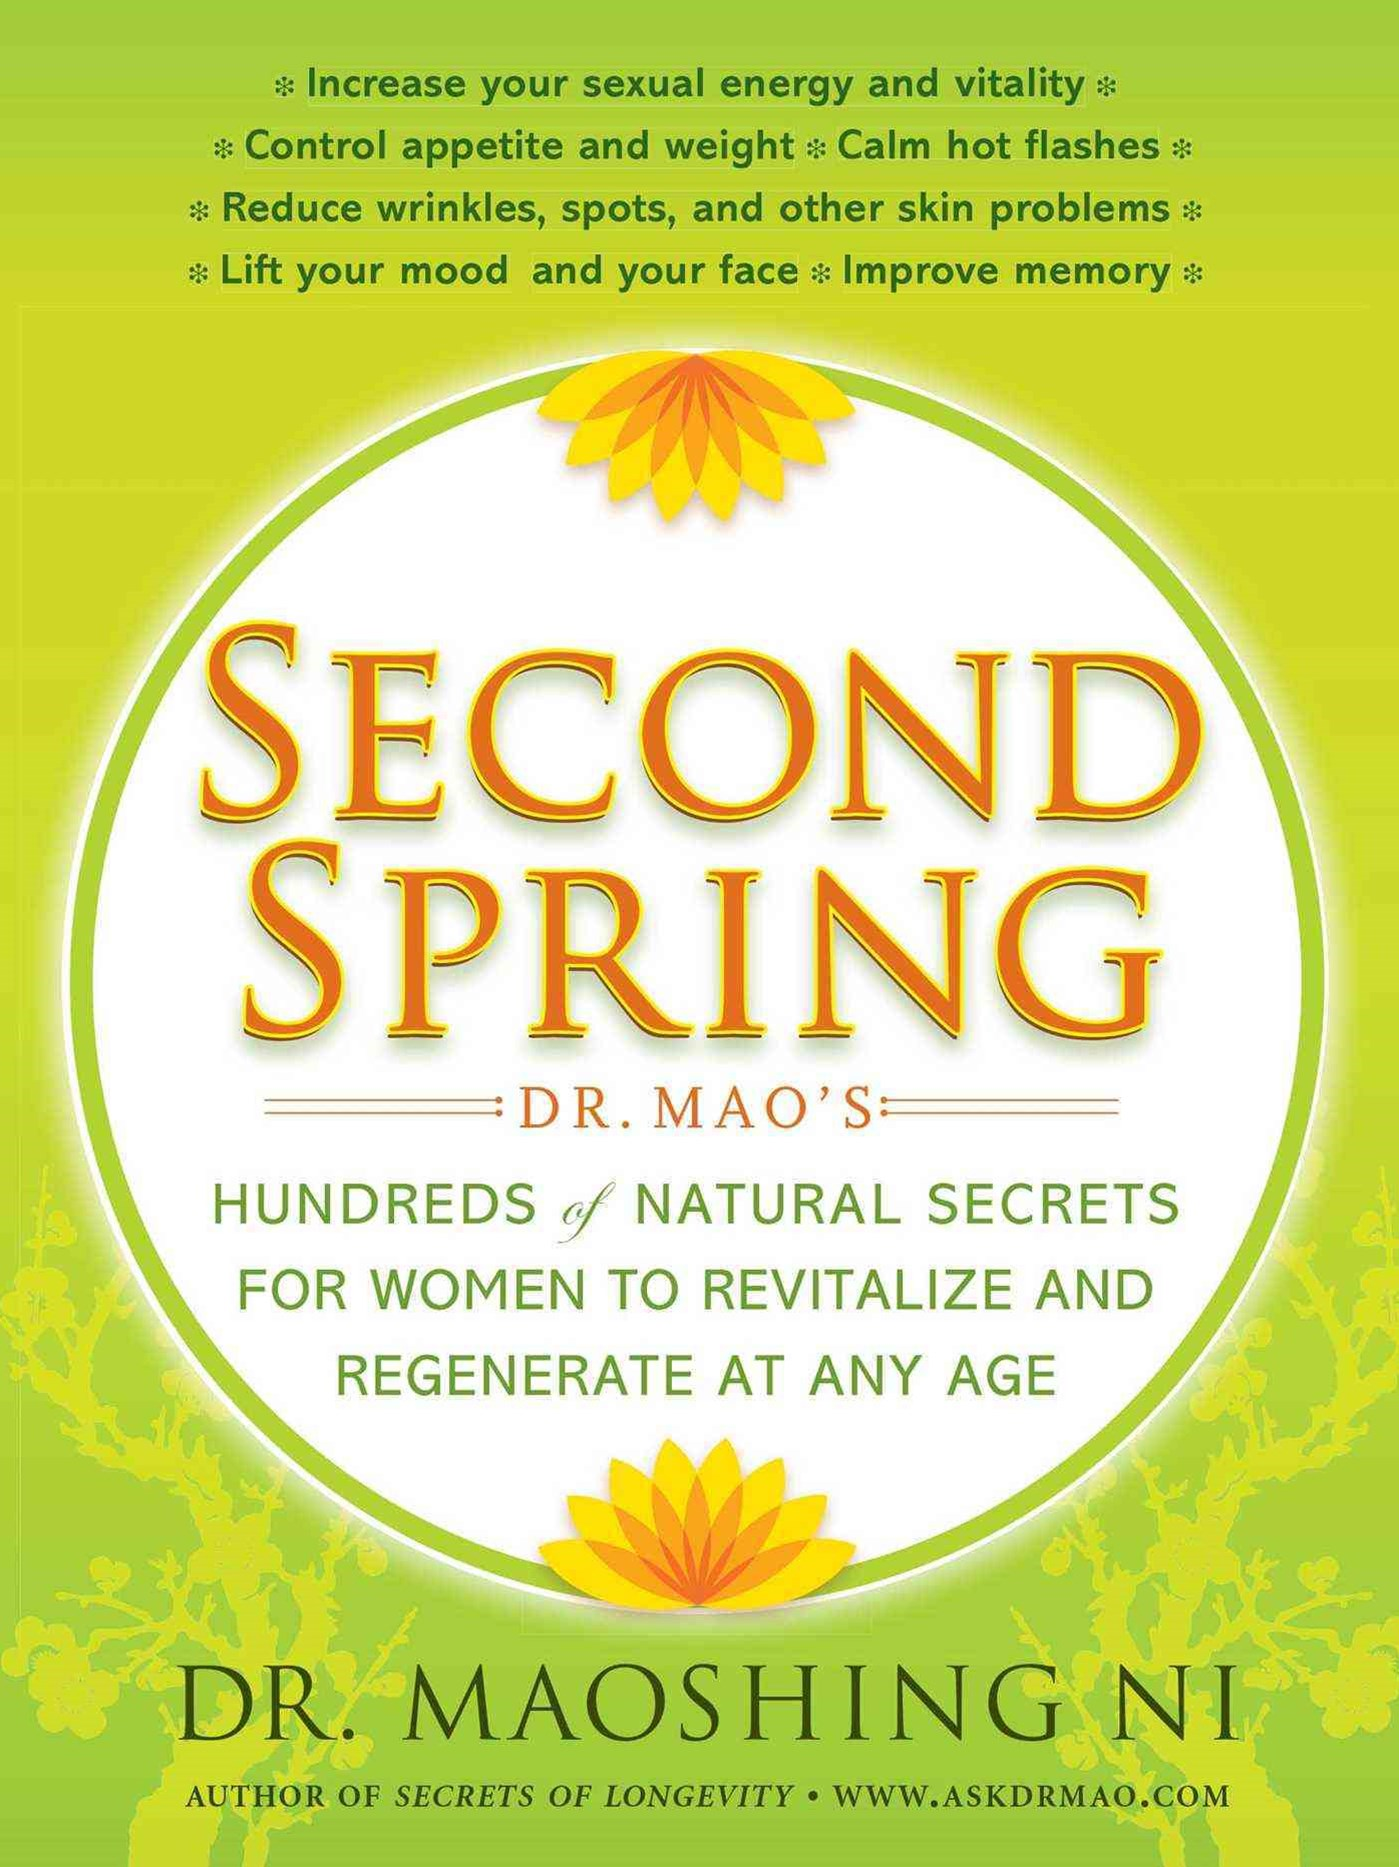 Second Spring: Dr Mao's Hundreds of Natural Secrets for Women in Pre-Menopause and Meno pause